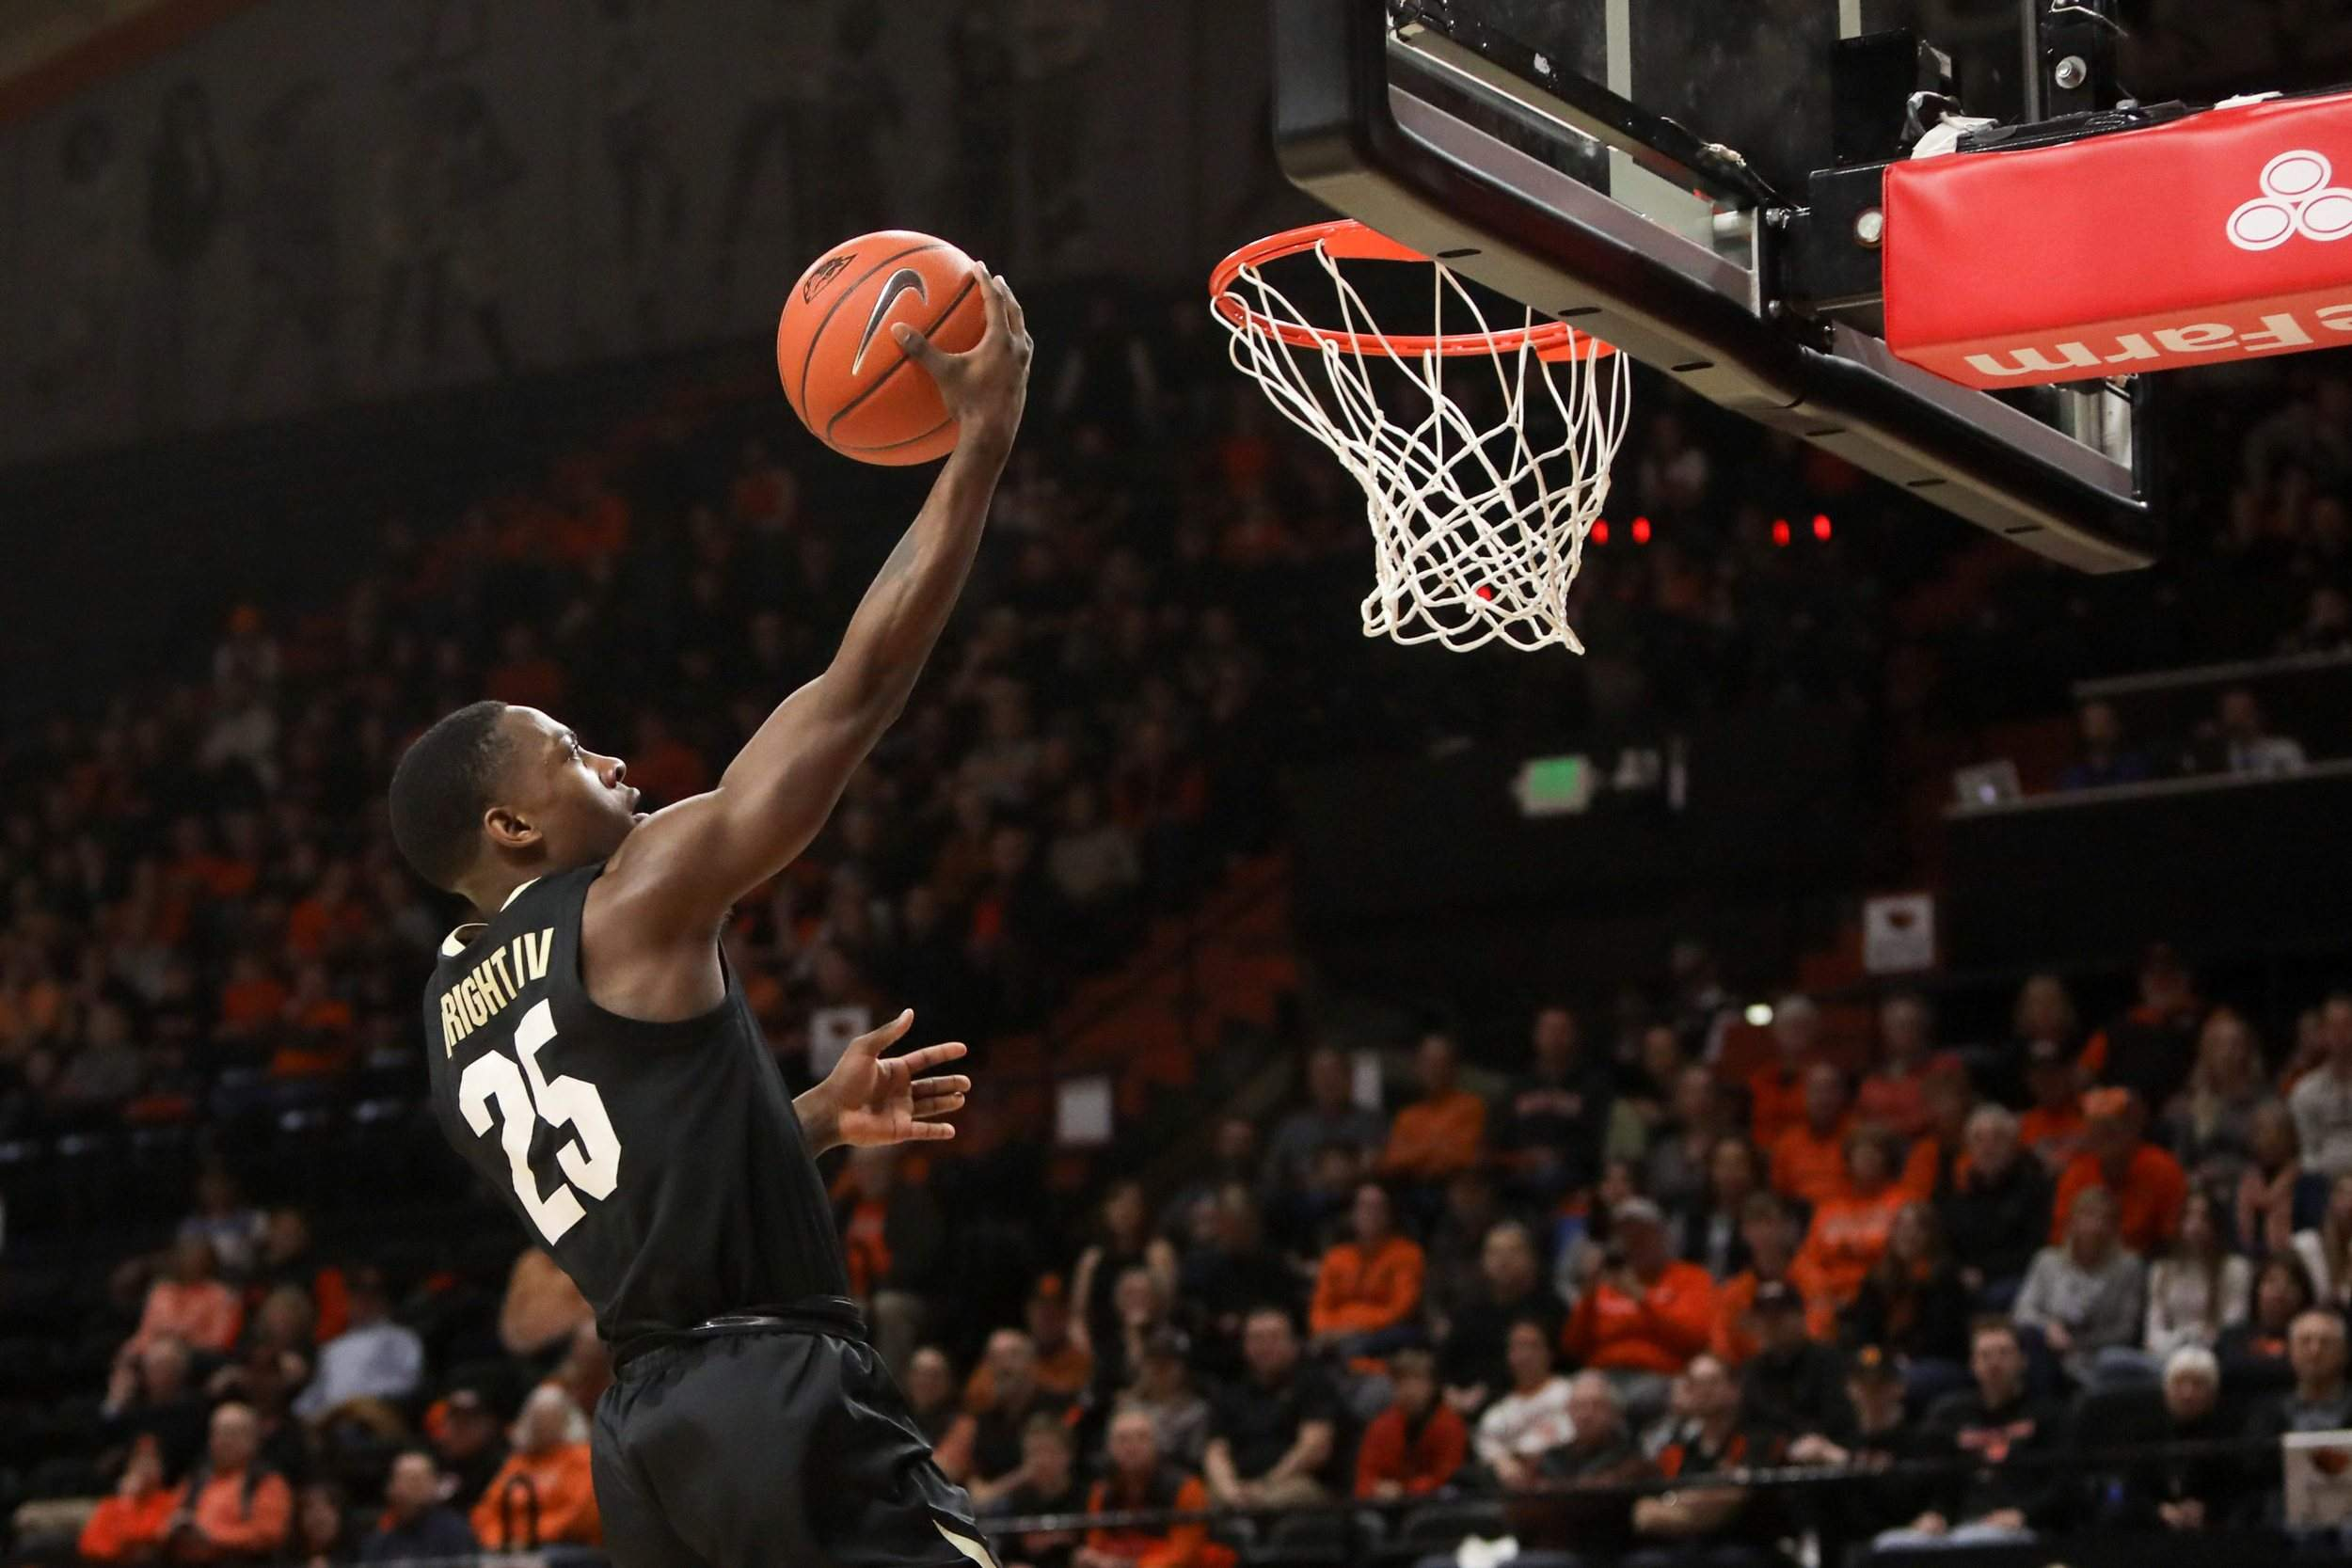 Despite 9-minute drought, No. 17 OR  tops No. 16 Colorado